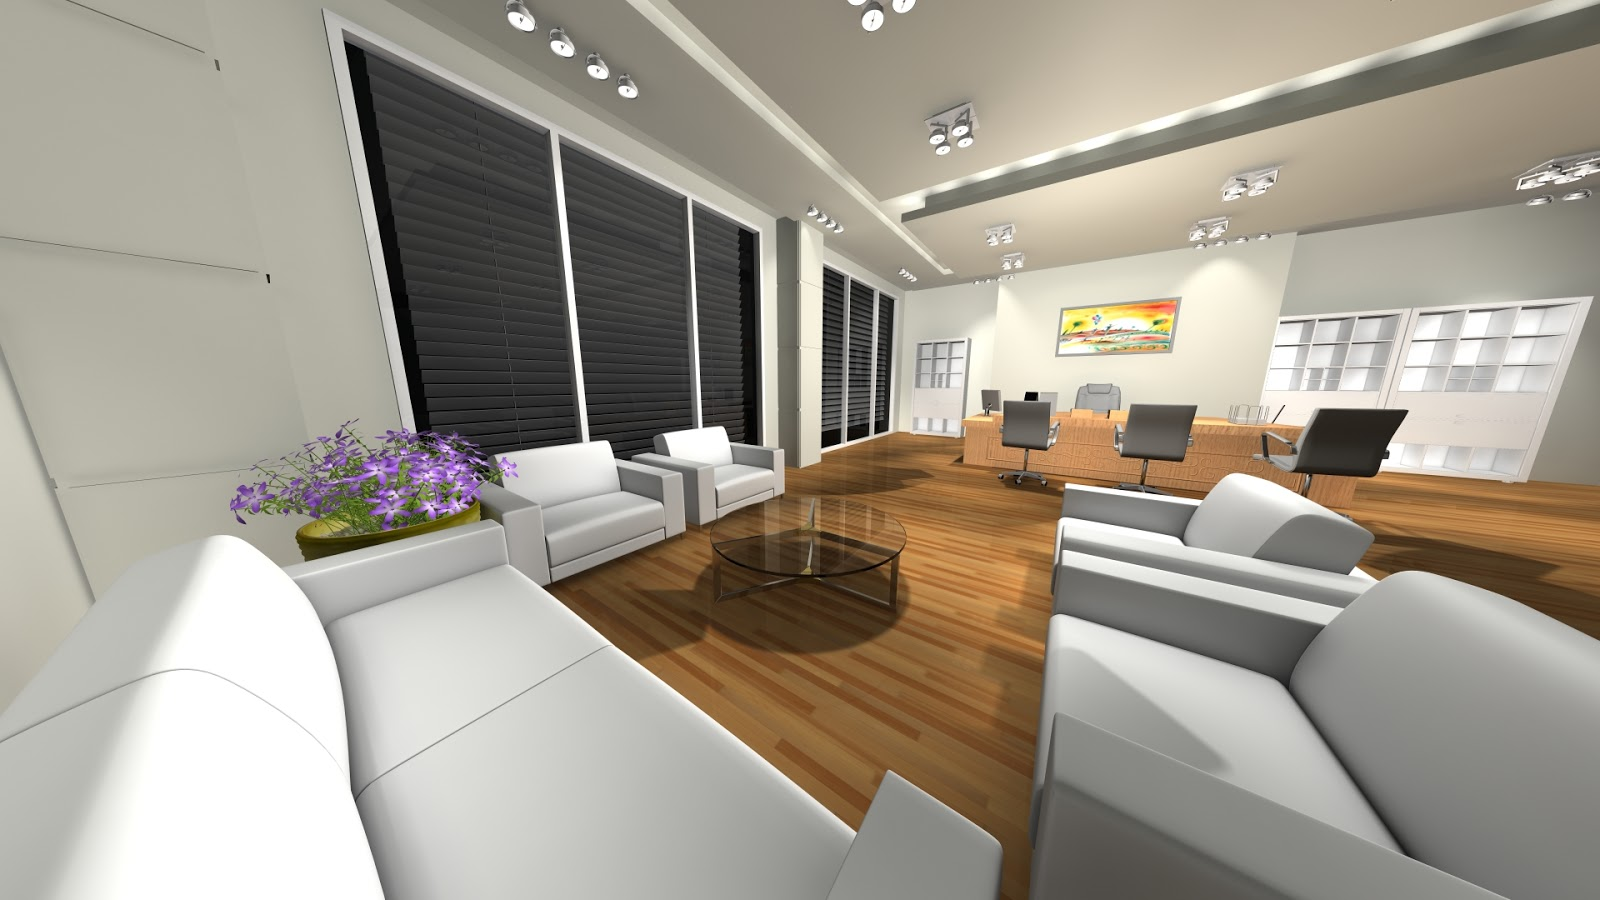 Sajid designer office room 3d interior design 3ds max for Office room interior designs